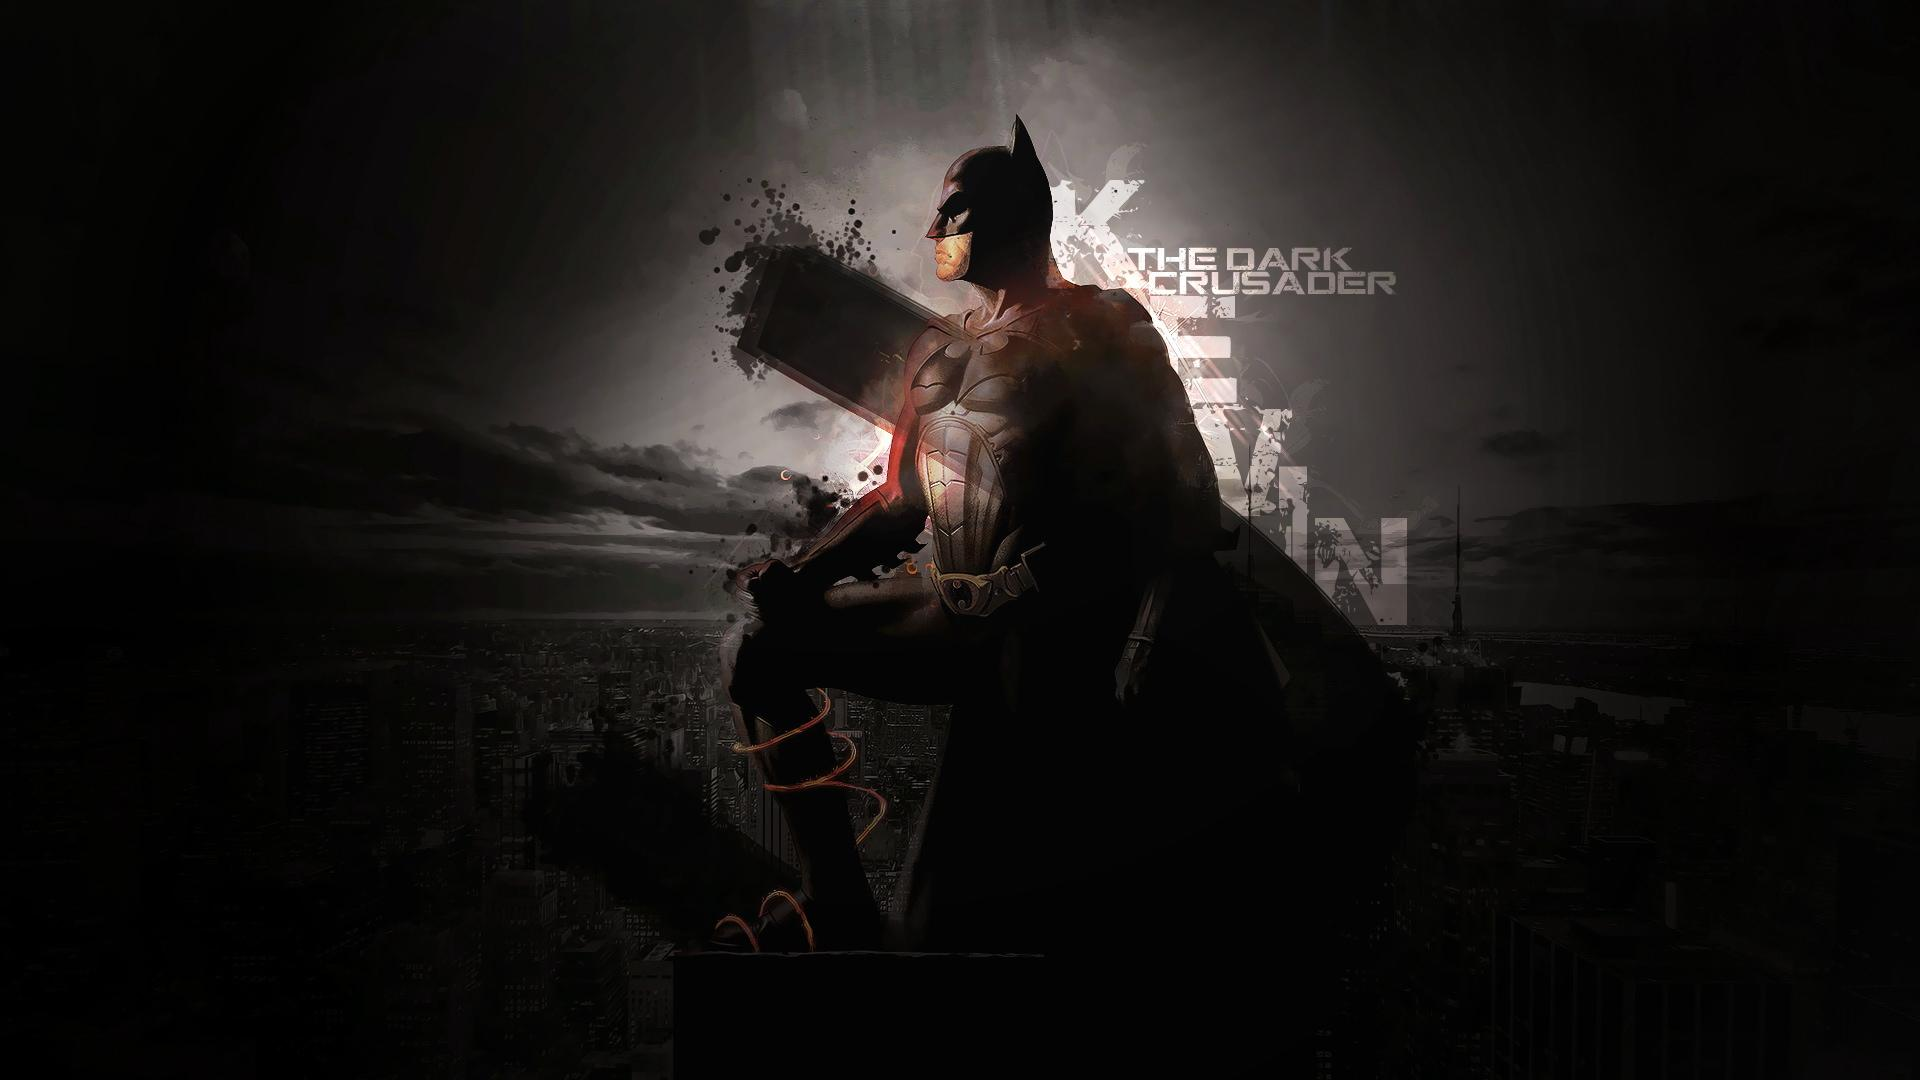 Batman Arkham City 1920x1080 Wallpapers 1920x1080 Wallpapers 1920x1080